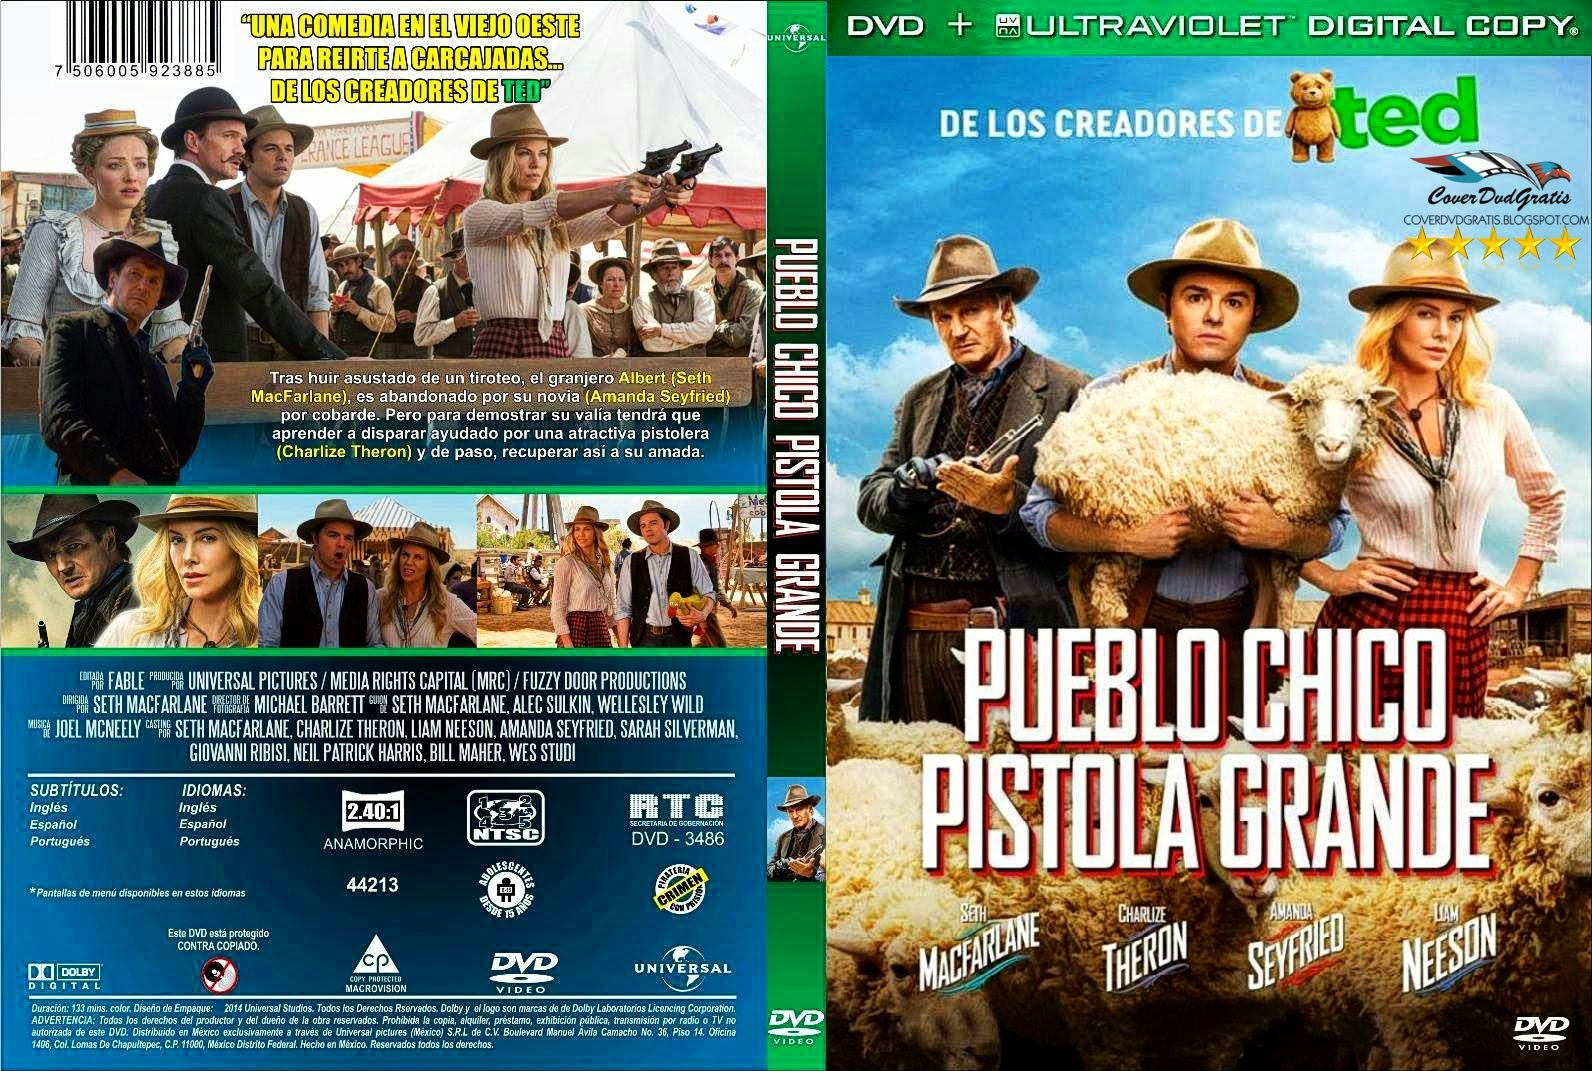 A Million Ways To Die In The West 2014 DVD COVER ...